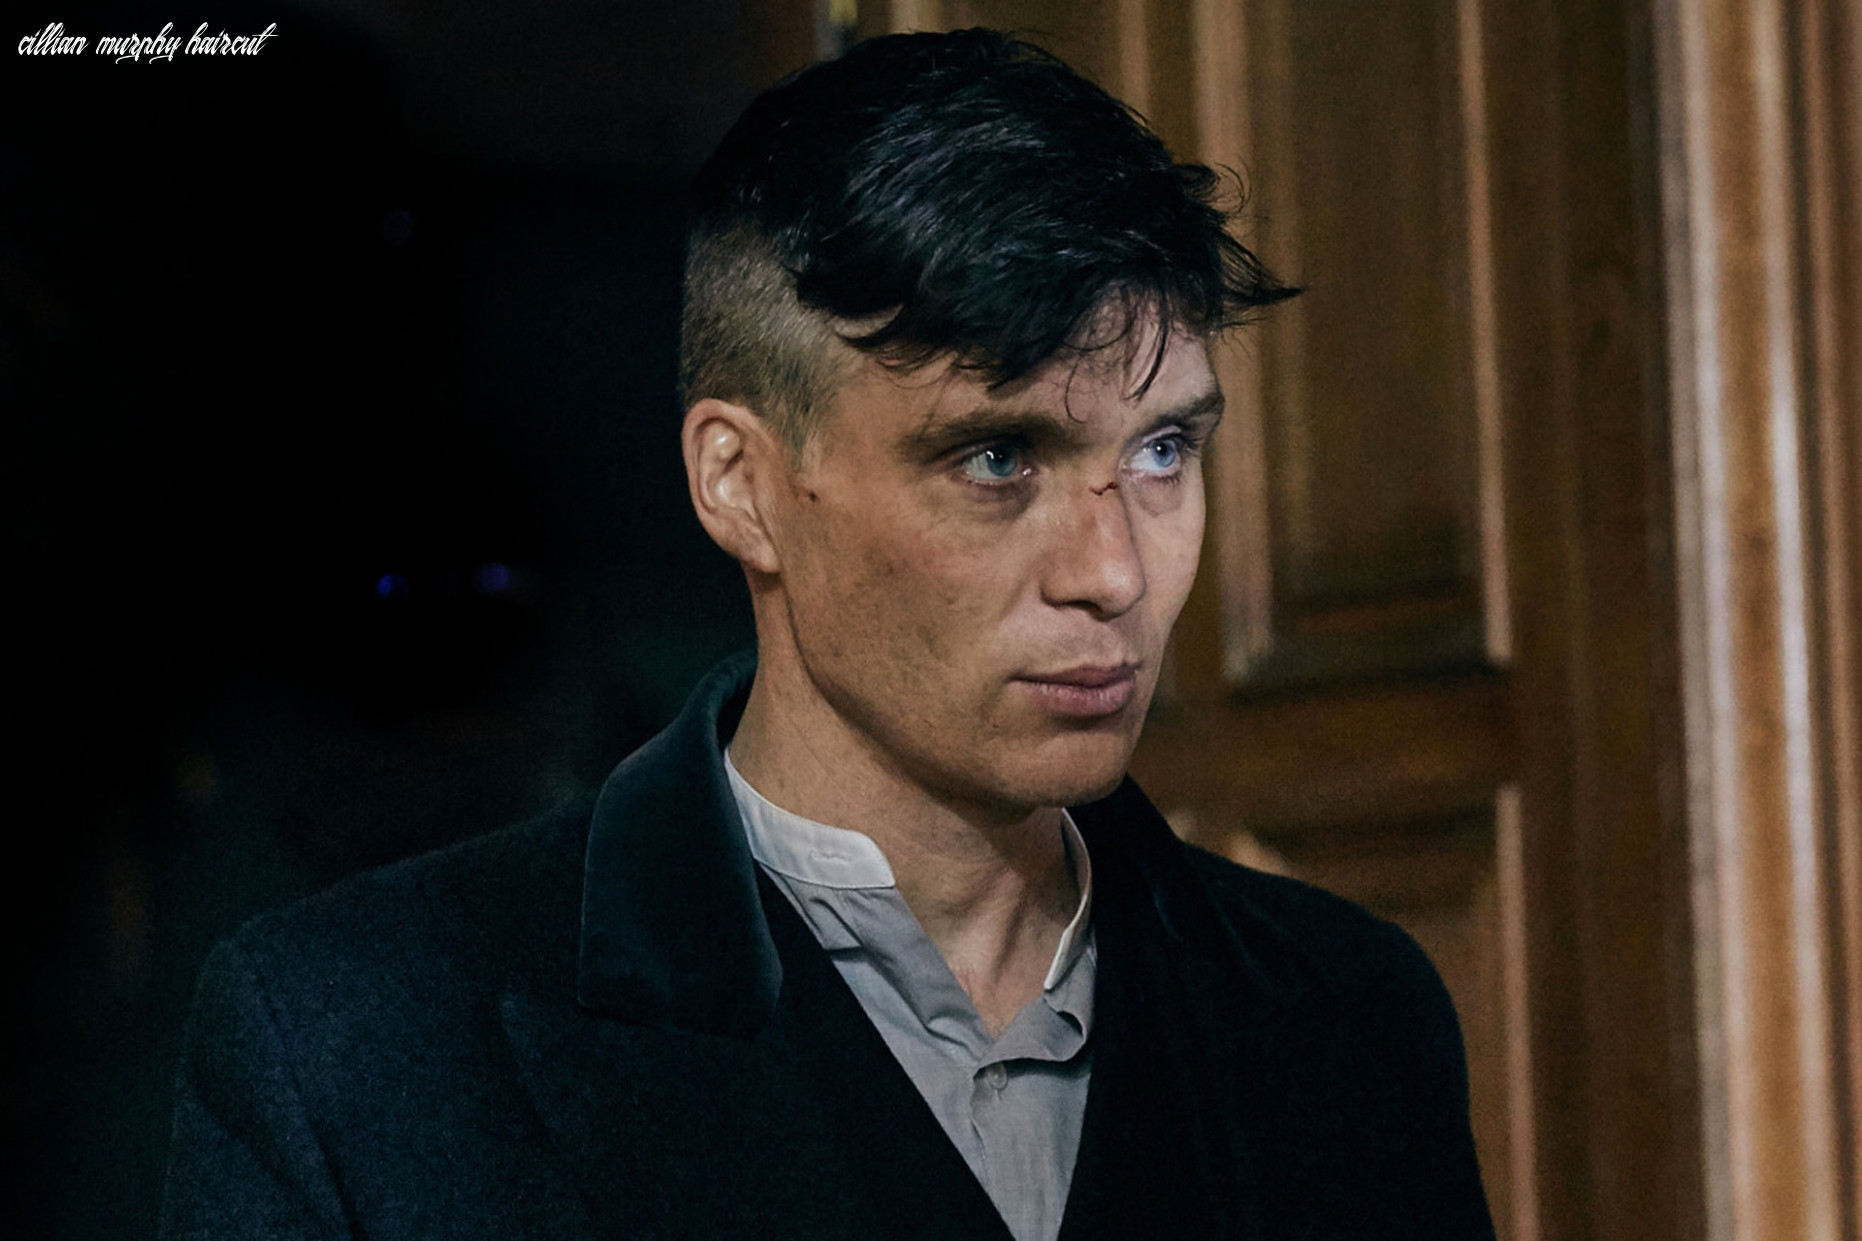 Psa: cillian murphy, the man who plays tommy shelby himself, hates